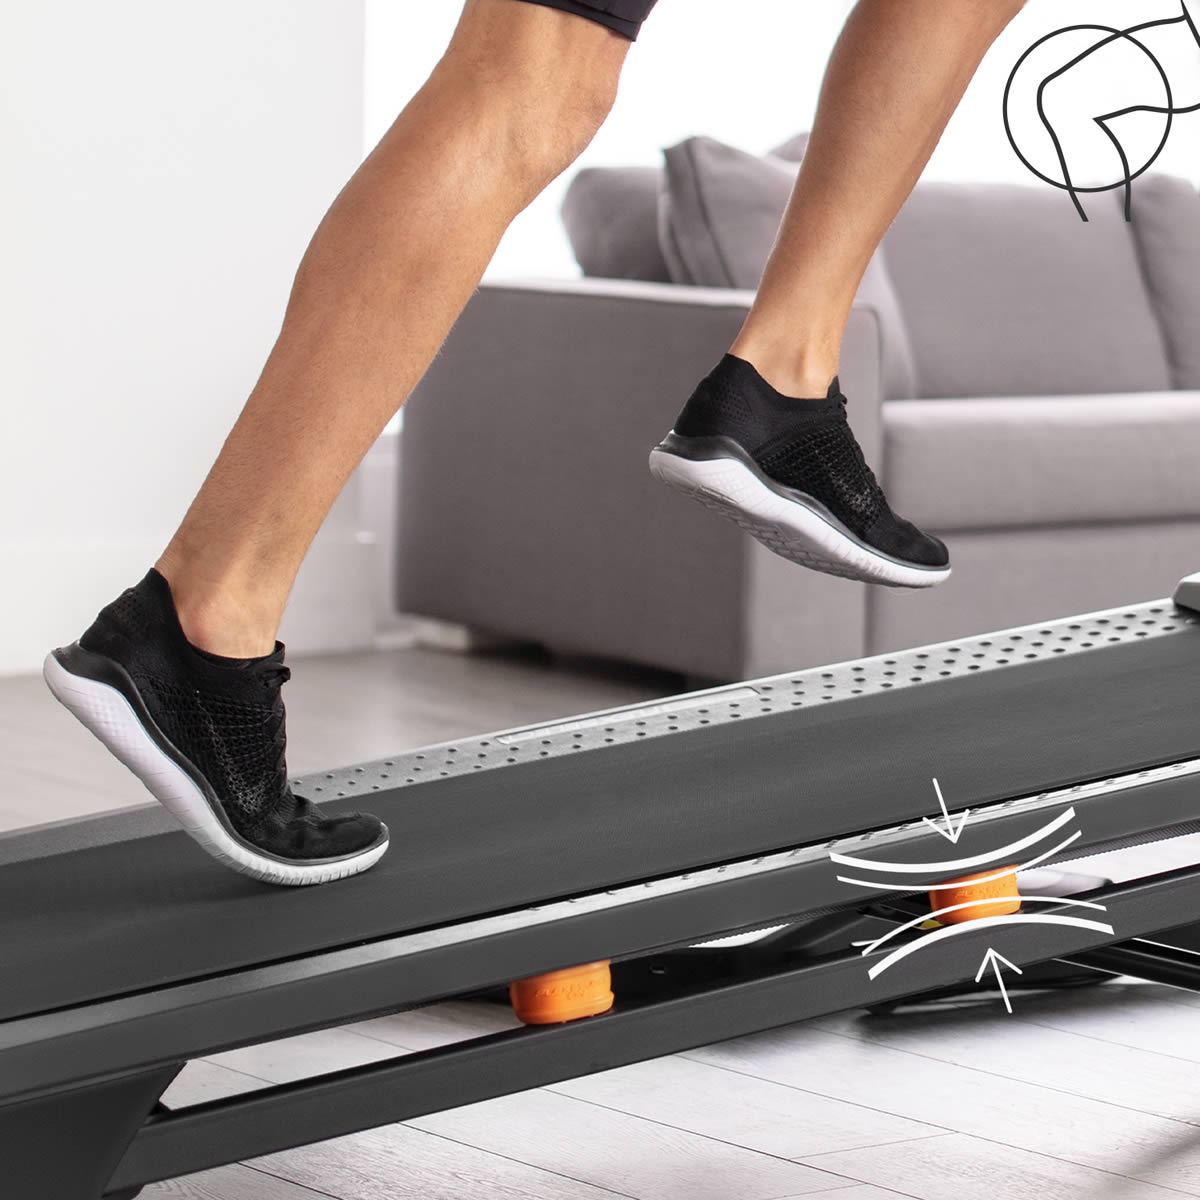 To activate the  Flex Select cushioning  option on the  T Series treadmills  each orange cushioning isolator, on each side of the deck, has to be turned one half turn for impact reduction